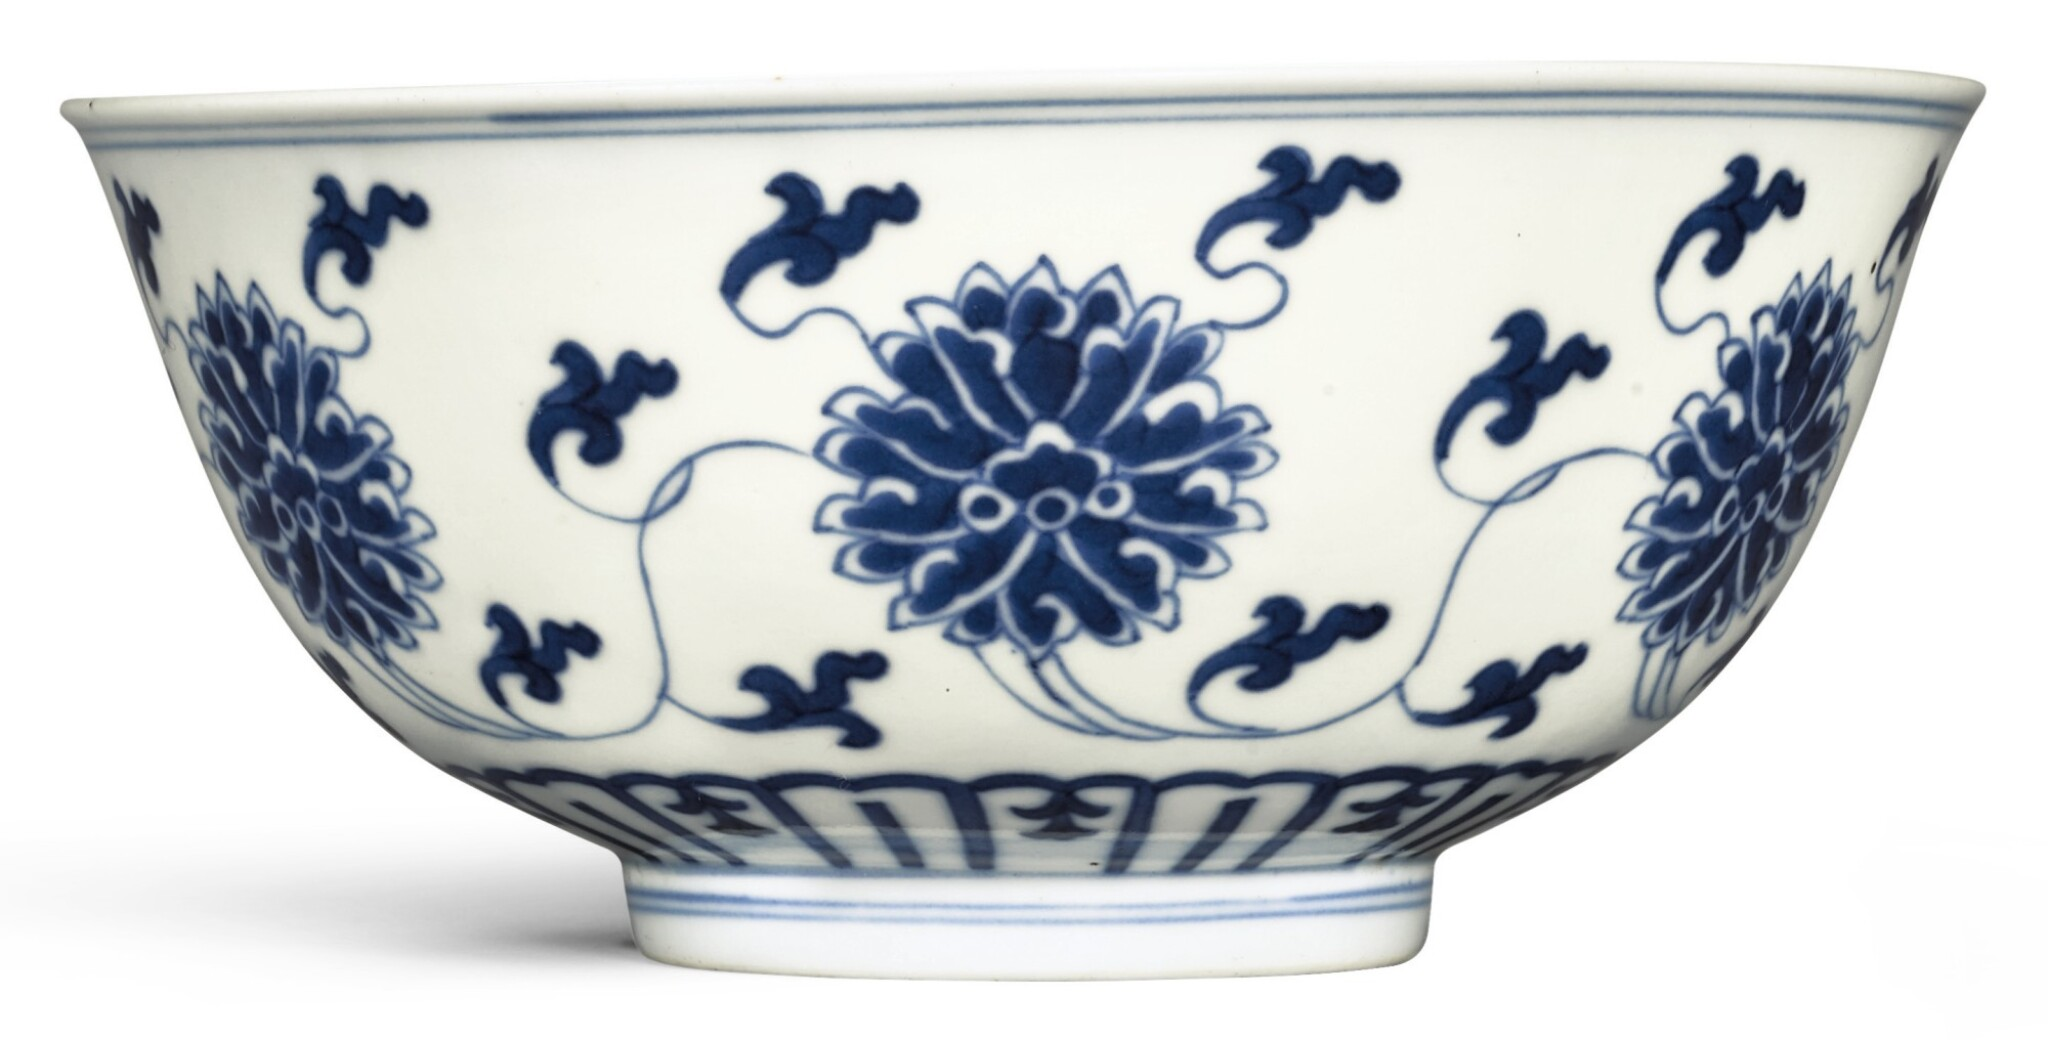 View full screen - View 1 of Lot 333. A BLUE AND WHITE 'LOTUS' BOWL DAOGUANG SEAL MARK AND PERIOD   清道光 青花纏枝蓮紋盌 《大清道光年製》款.